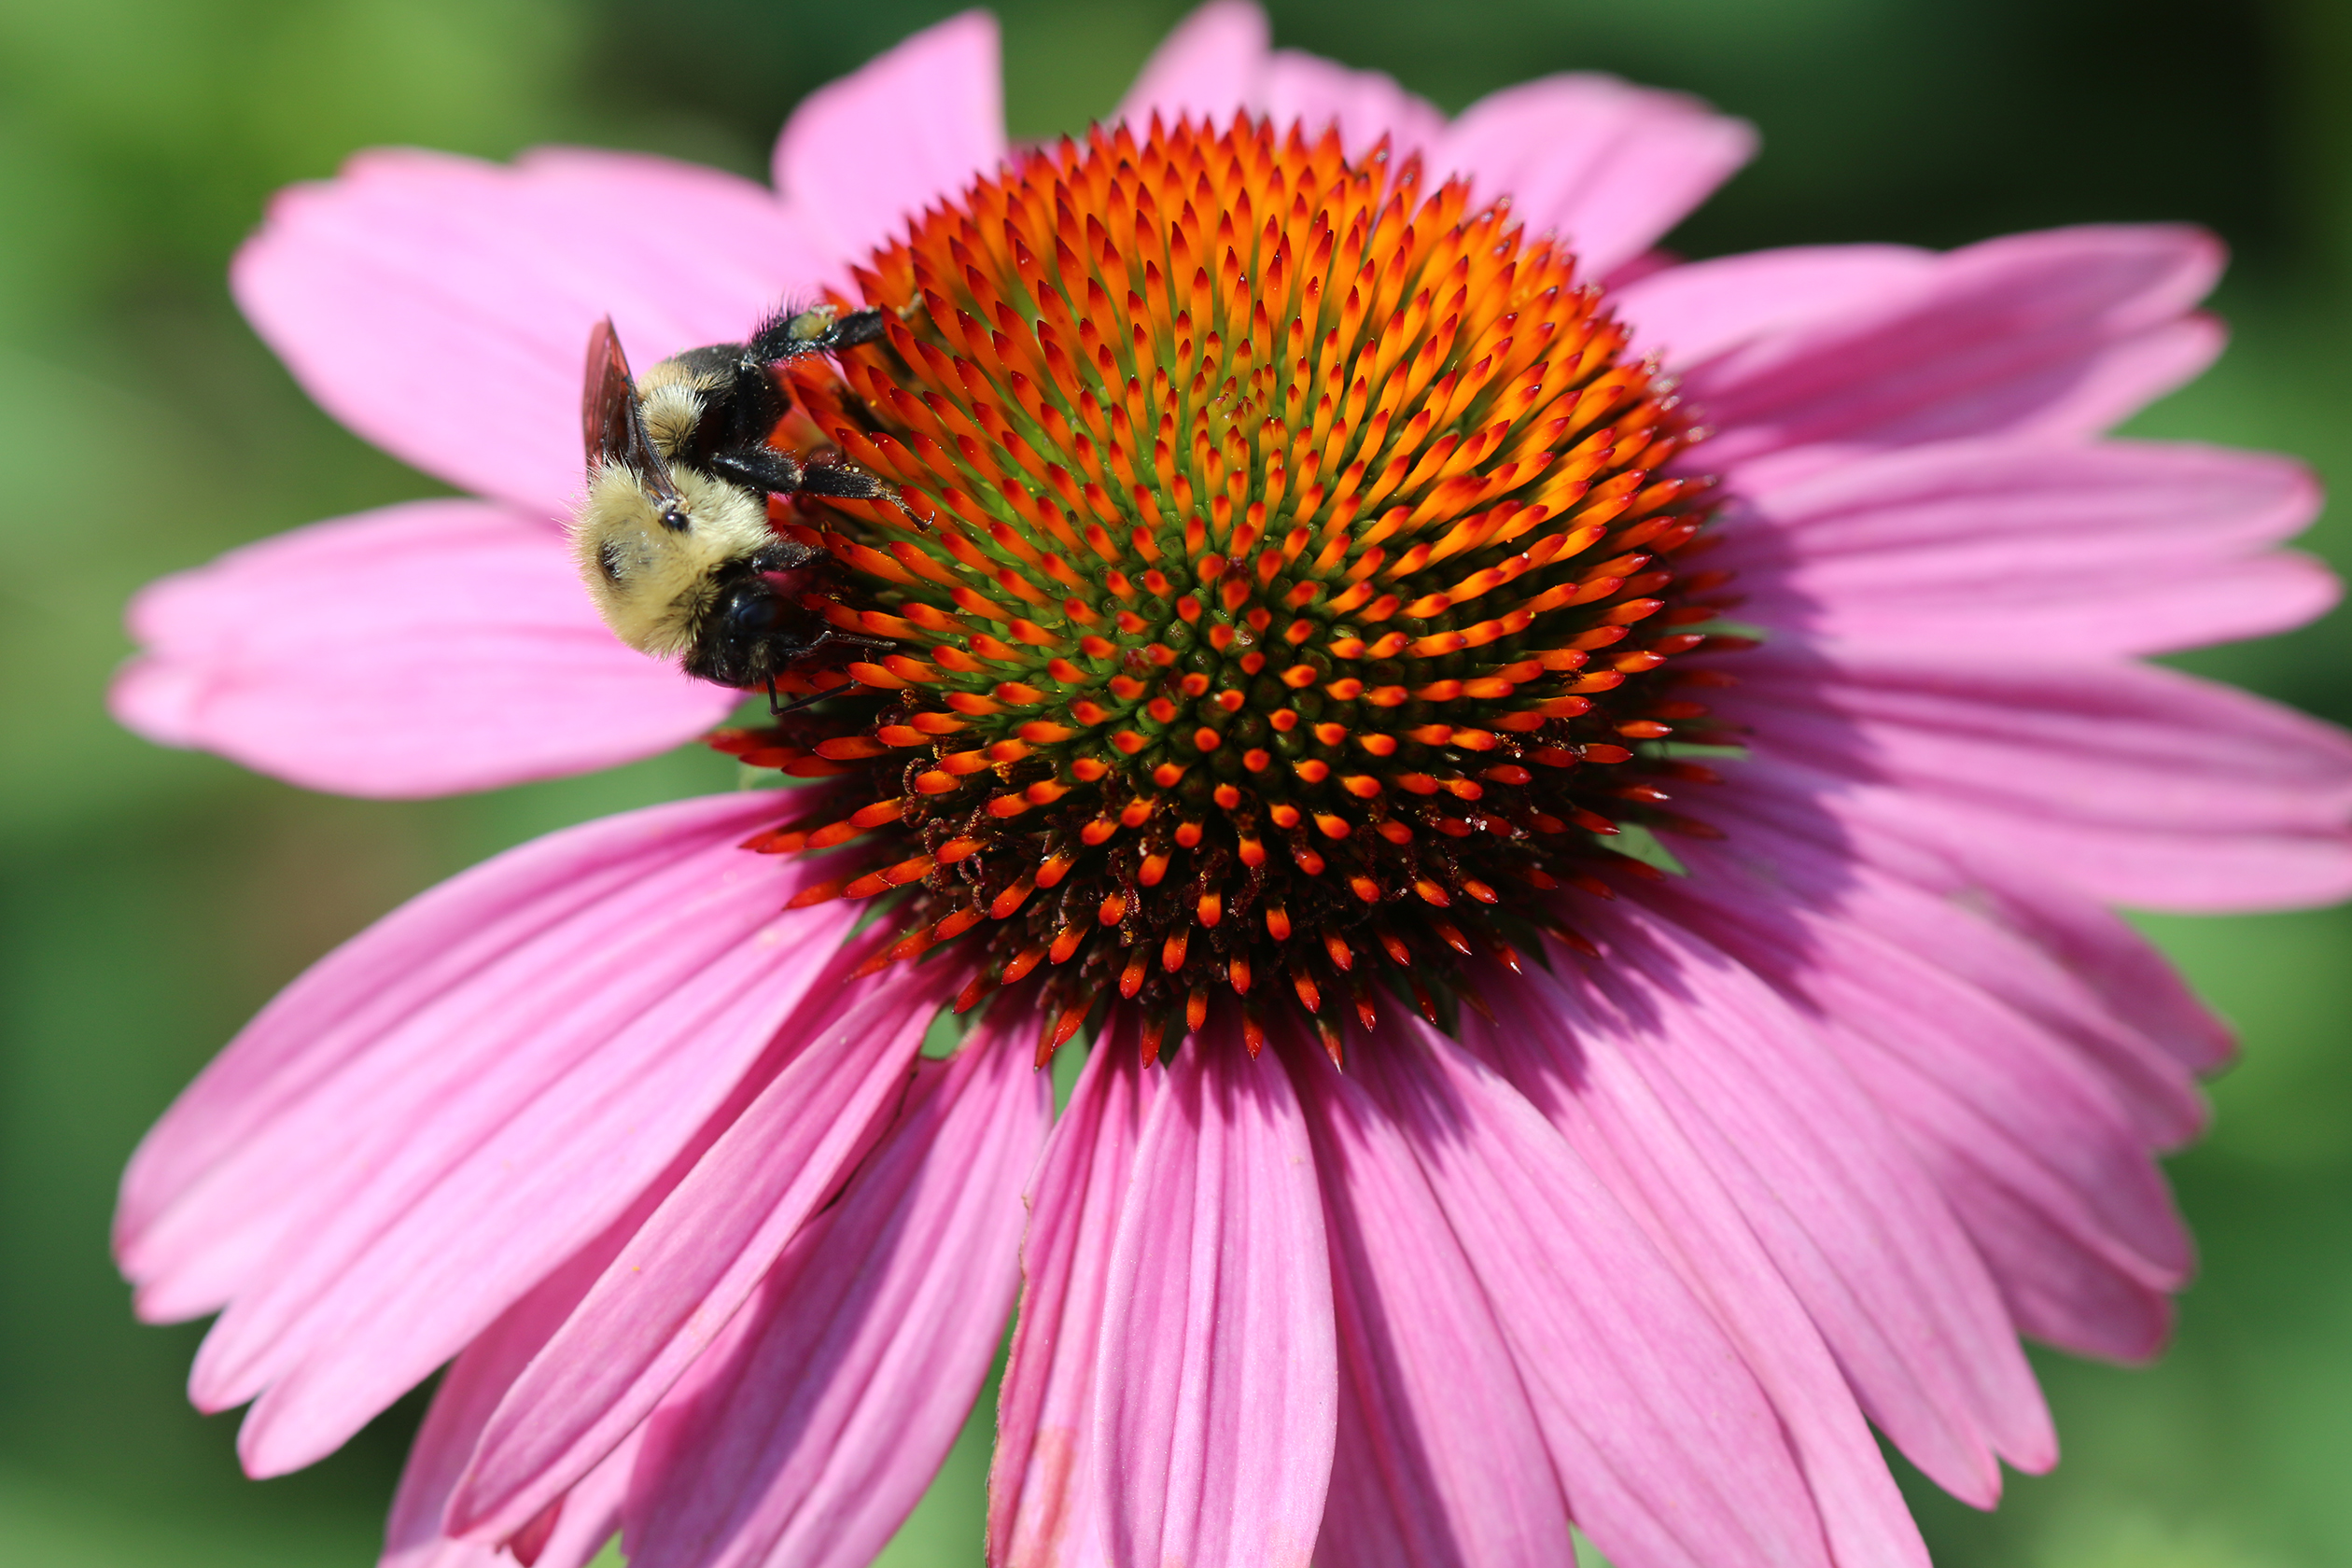 A yellow and black striped bumble bee drinks nectar on the perfectly rounded dome of this purple coneflower.